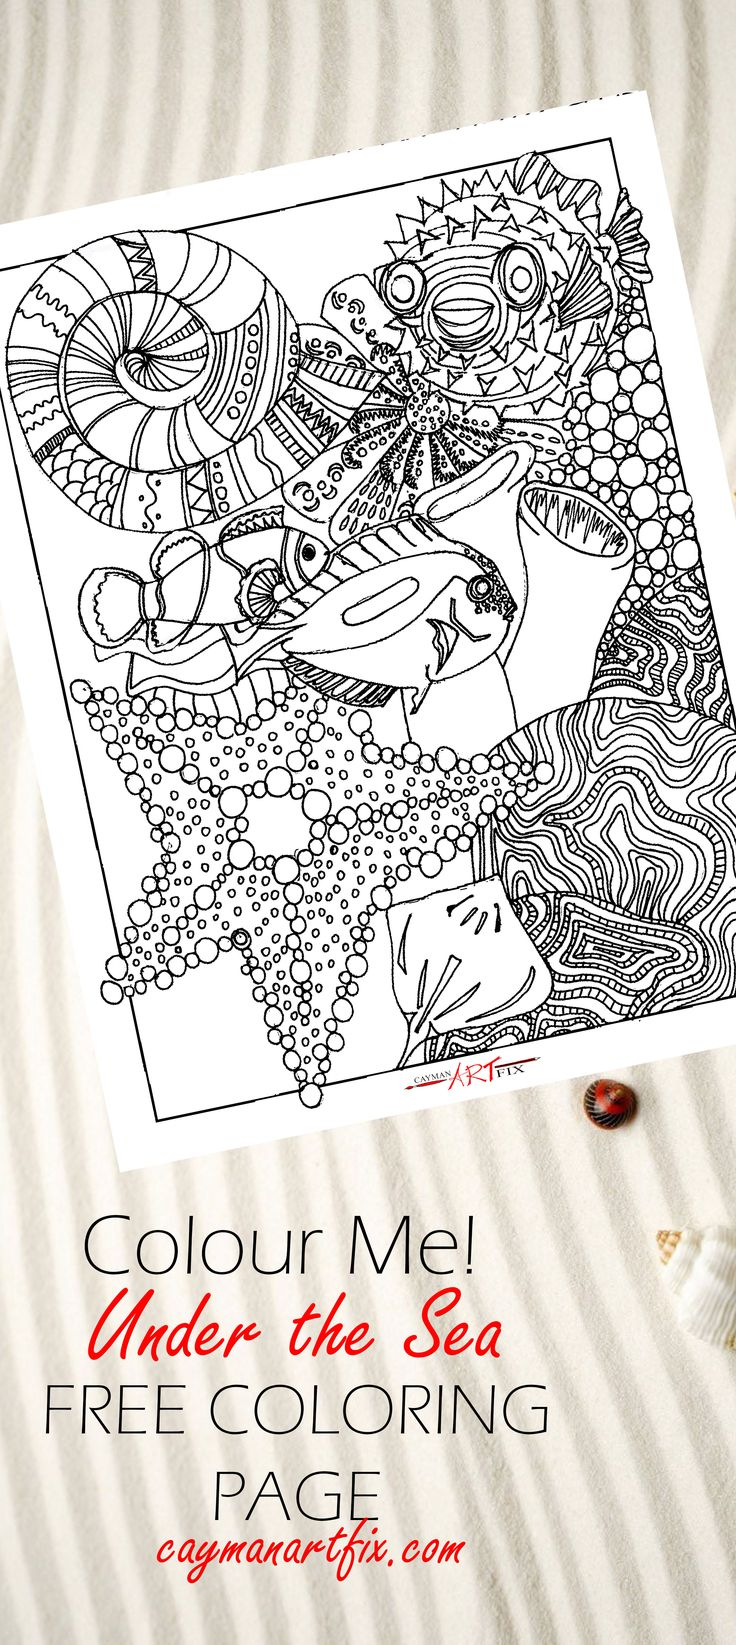 Make it come to life! #coloringpages #adultcoloringbooks #Downloads #Print #color #crayons #markers #arttherapy #IslandLife #islandart